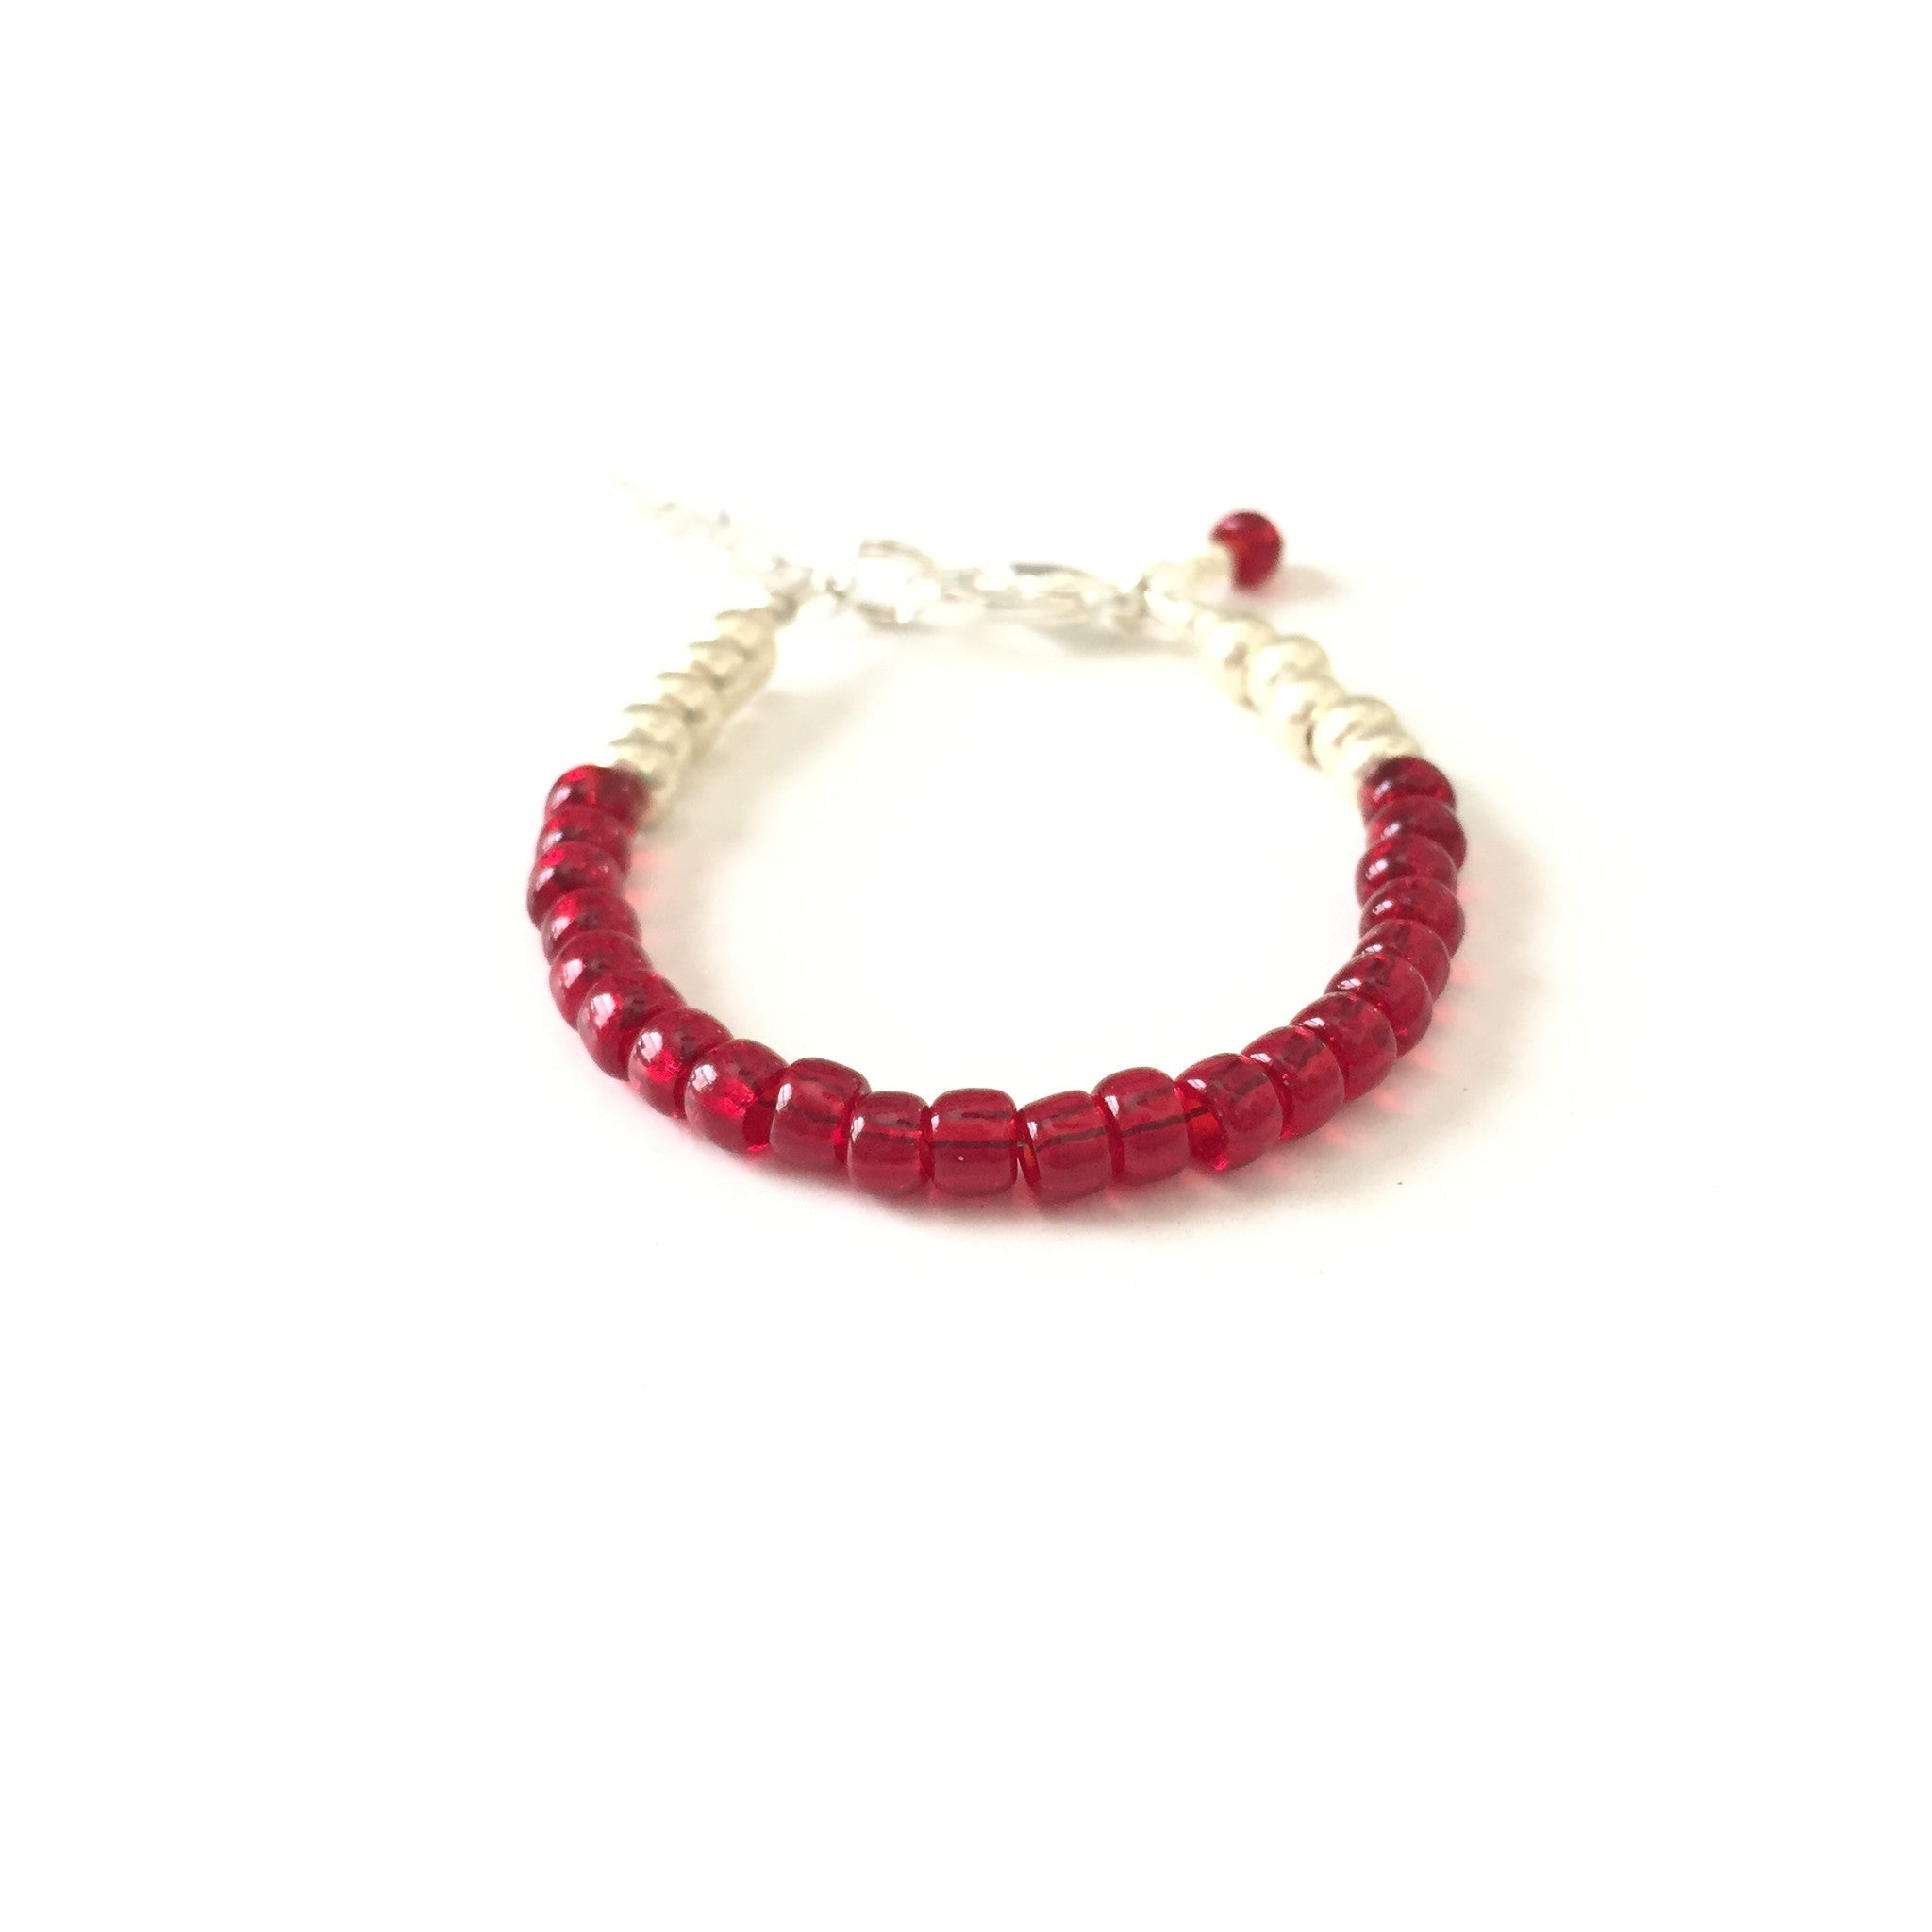 borsheims garnet jewelry bracelet january rings birthstone